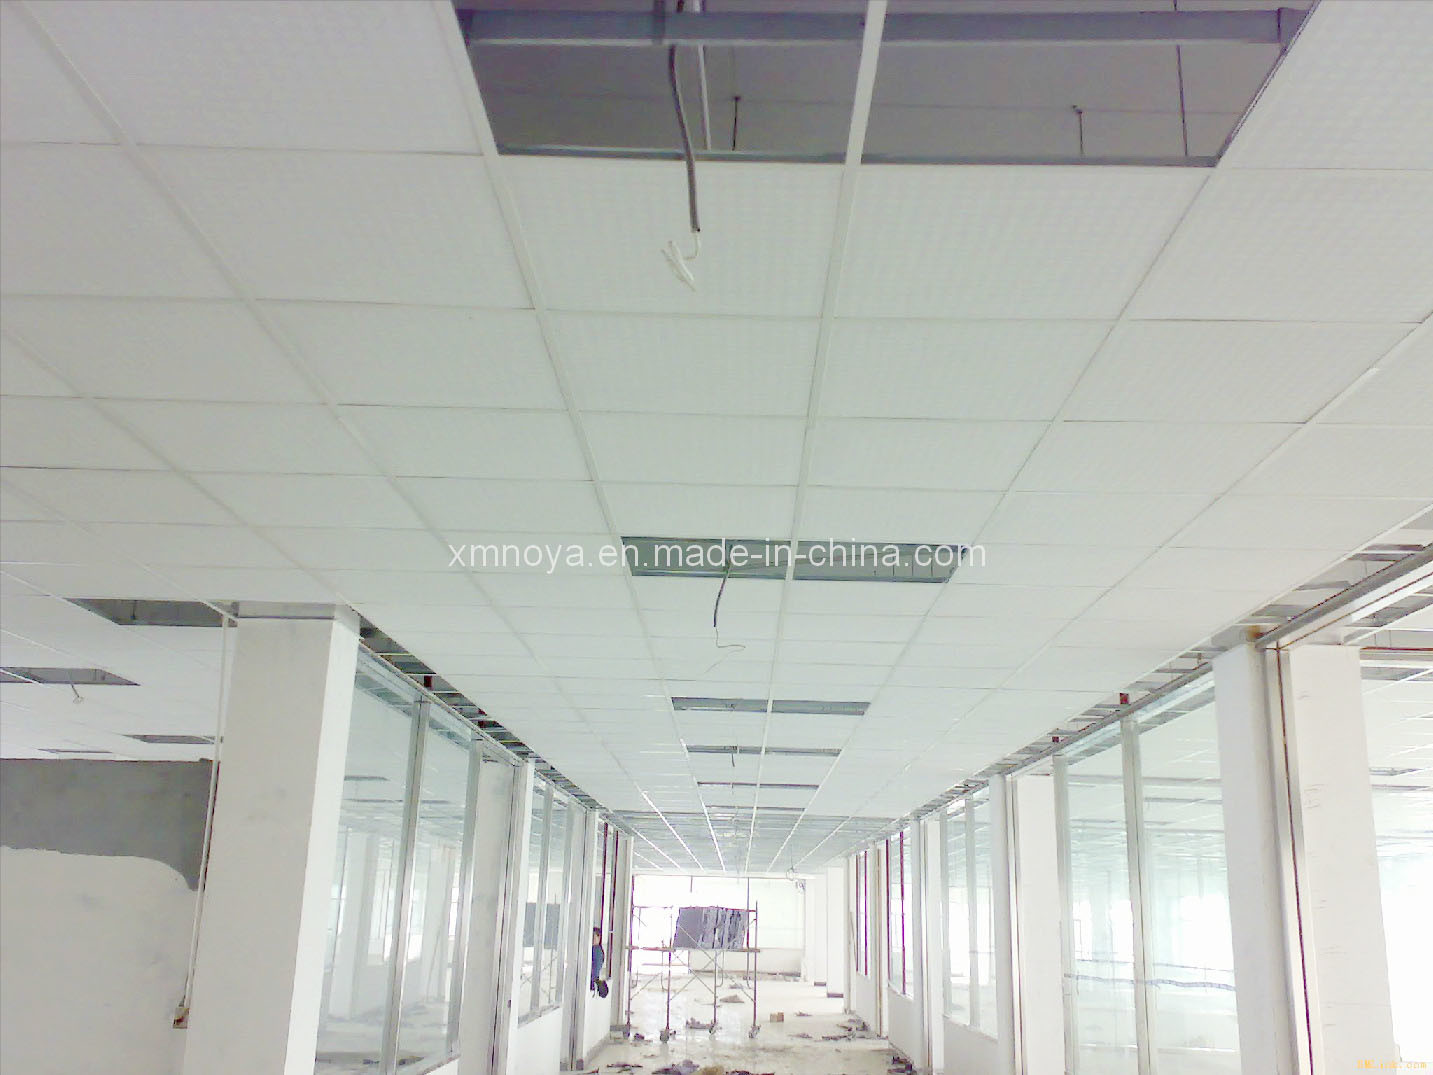 China Suspended Ceiling System Building Steel T Grid For